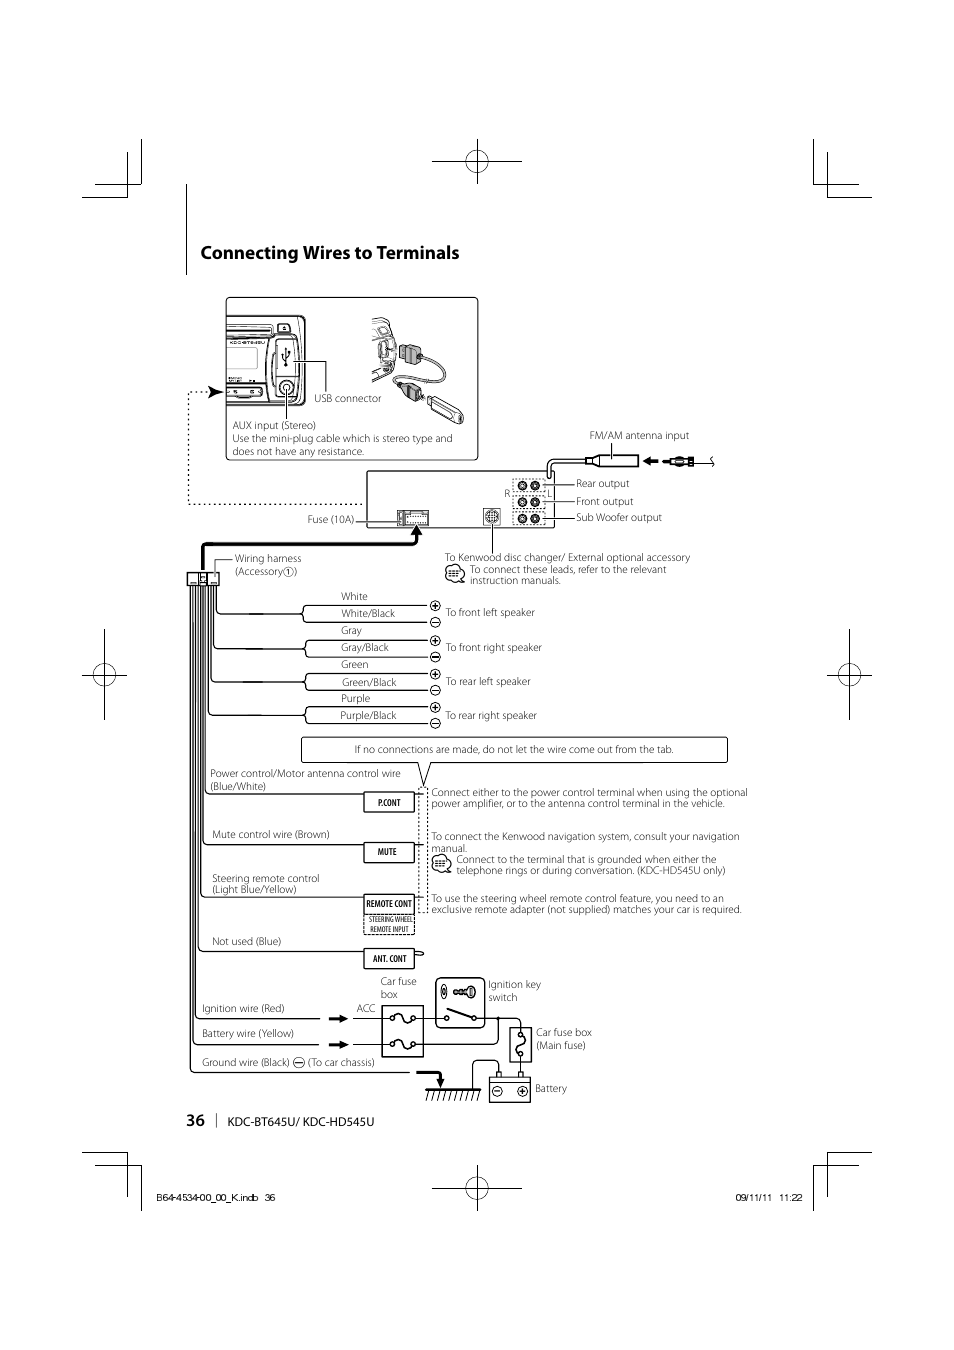 Wiring Diagram Kenwood Kdc Bt645u - New Wiring Diagrams on kenwood ddx6019 remote control, kenwood ddx6019 harness, kenwood ddx6019 bluetooth, kenwood kdc mp338 wiring, kenwood kvt 717dvd wiring, kenwood kvt-516 wiring-diagram, kenwood car stereo wiring diagrams, kenwood ddx6019 installation manual, kenwood usb cable diagram, kenwood model kdc wiring-diagram, kenwood ddx514 manual, kenwood kdc 248u wiring, kenwood wiring connections, kenwood excelon ddx7015 wiring-diagram,